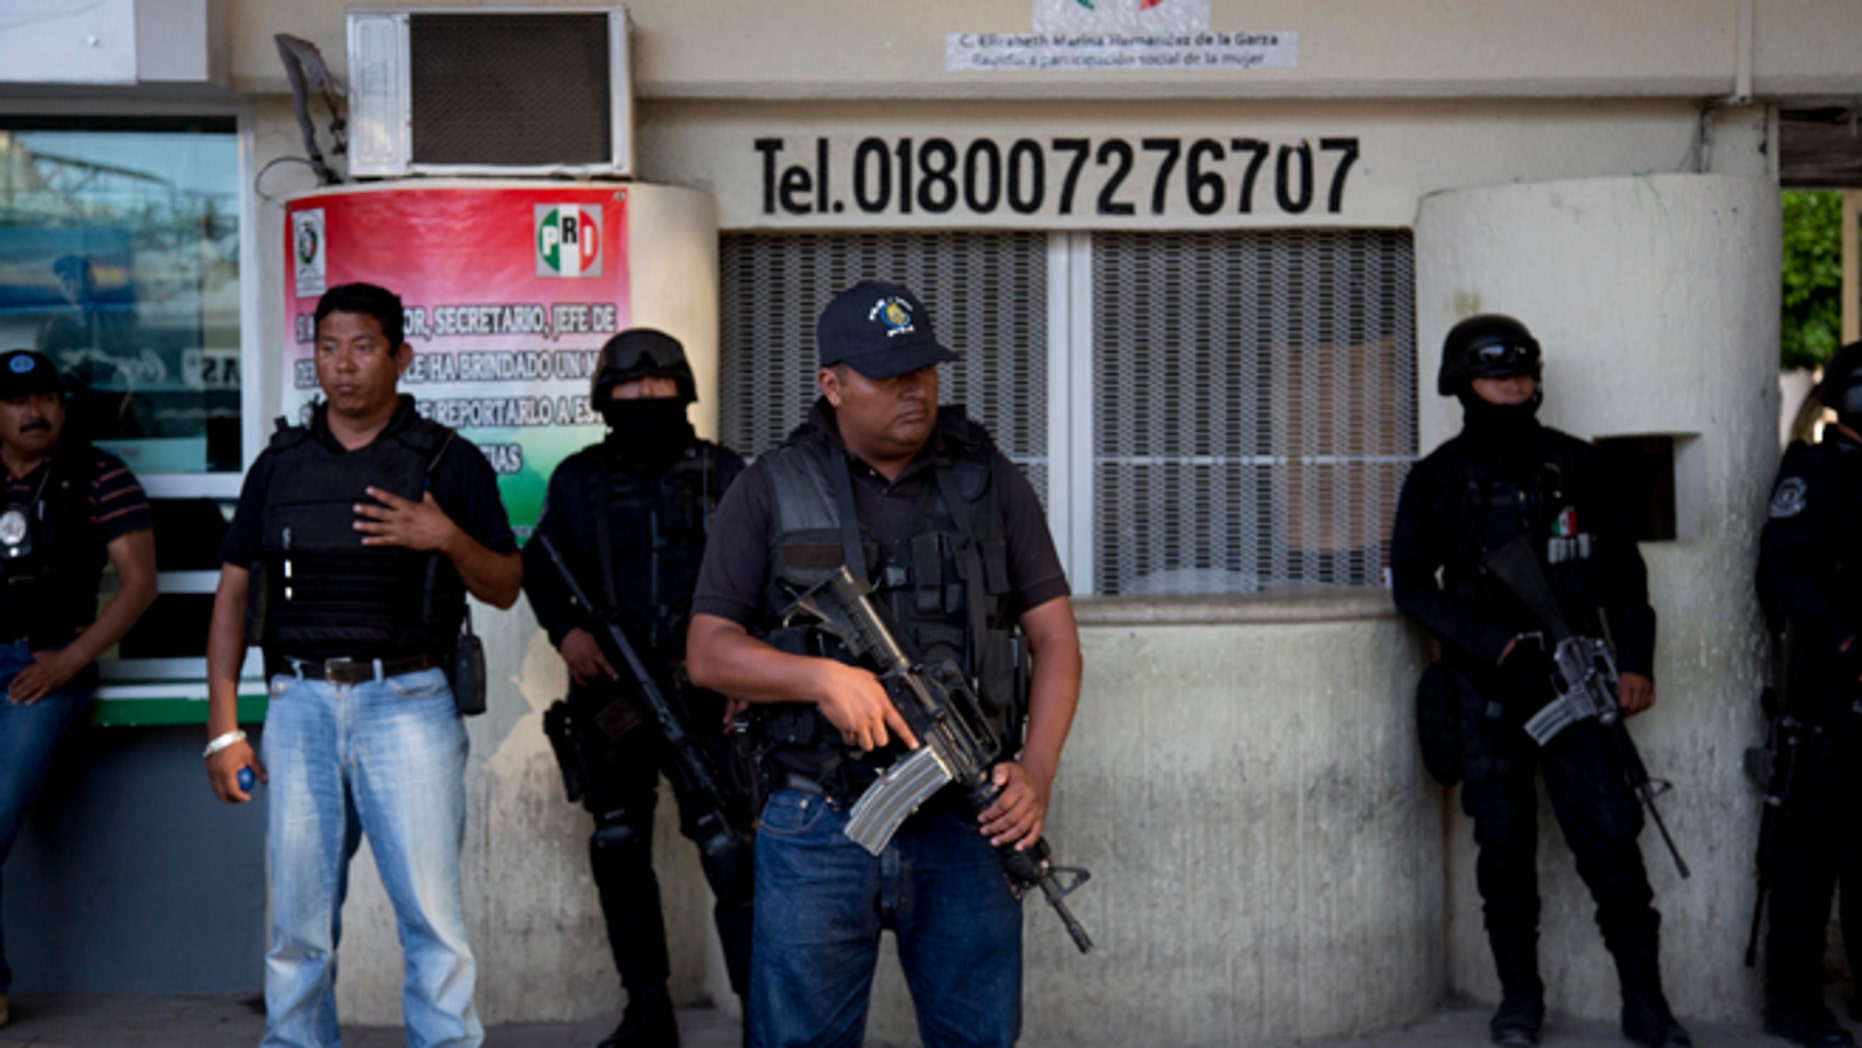 Police officers stand guard outside the municipality of Iguala, Mexico, Monday, Oct. 6, 2014. Federal officials on Monday disarmed local police and took over security after an attack on students that left at least six dead and 43 missing. Officials say that police officers were in league with a local gang called the Guerreros Unidos in carrying out the attack, and sent a new preventative unit of the federal police to keep order and help look for the missing. (AP Photo/Eduardo Verdugo)